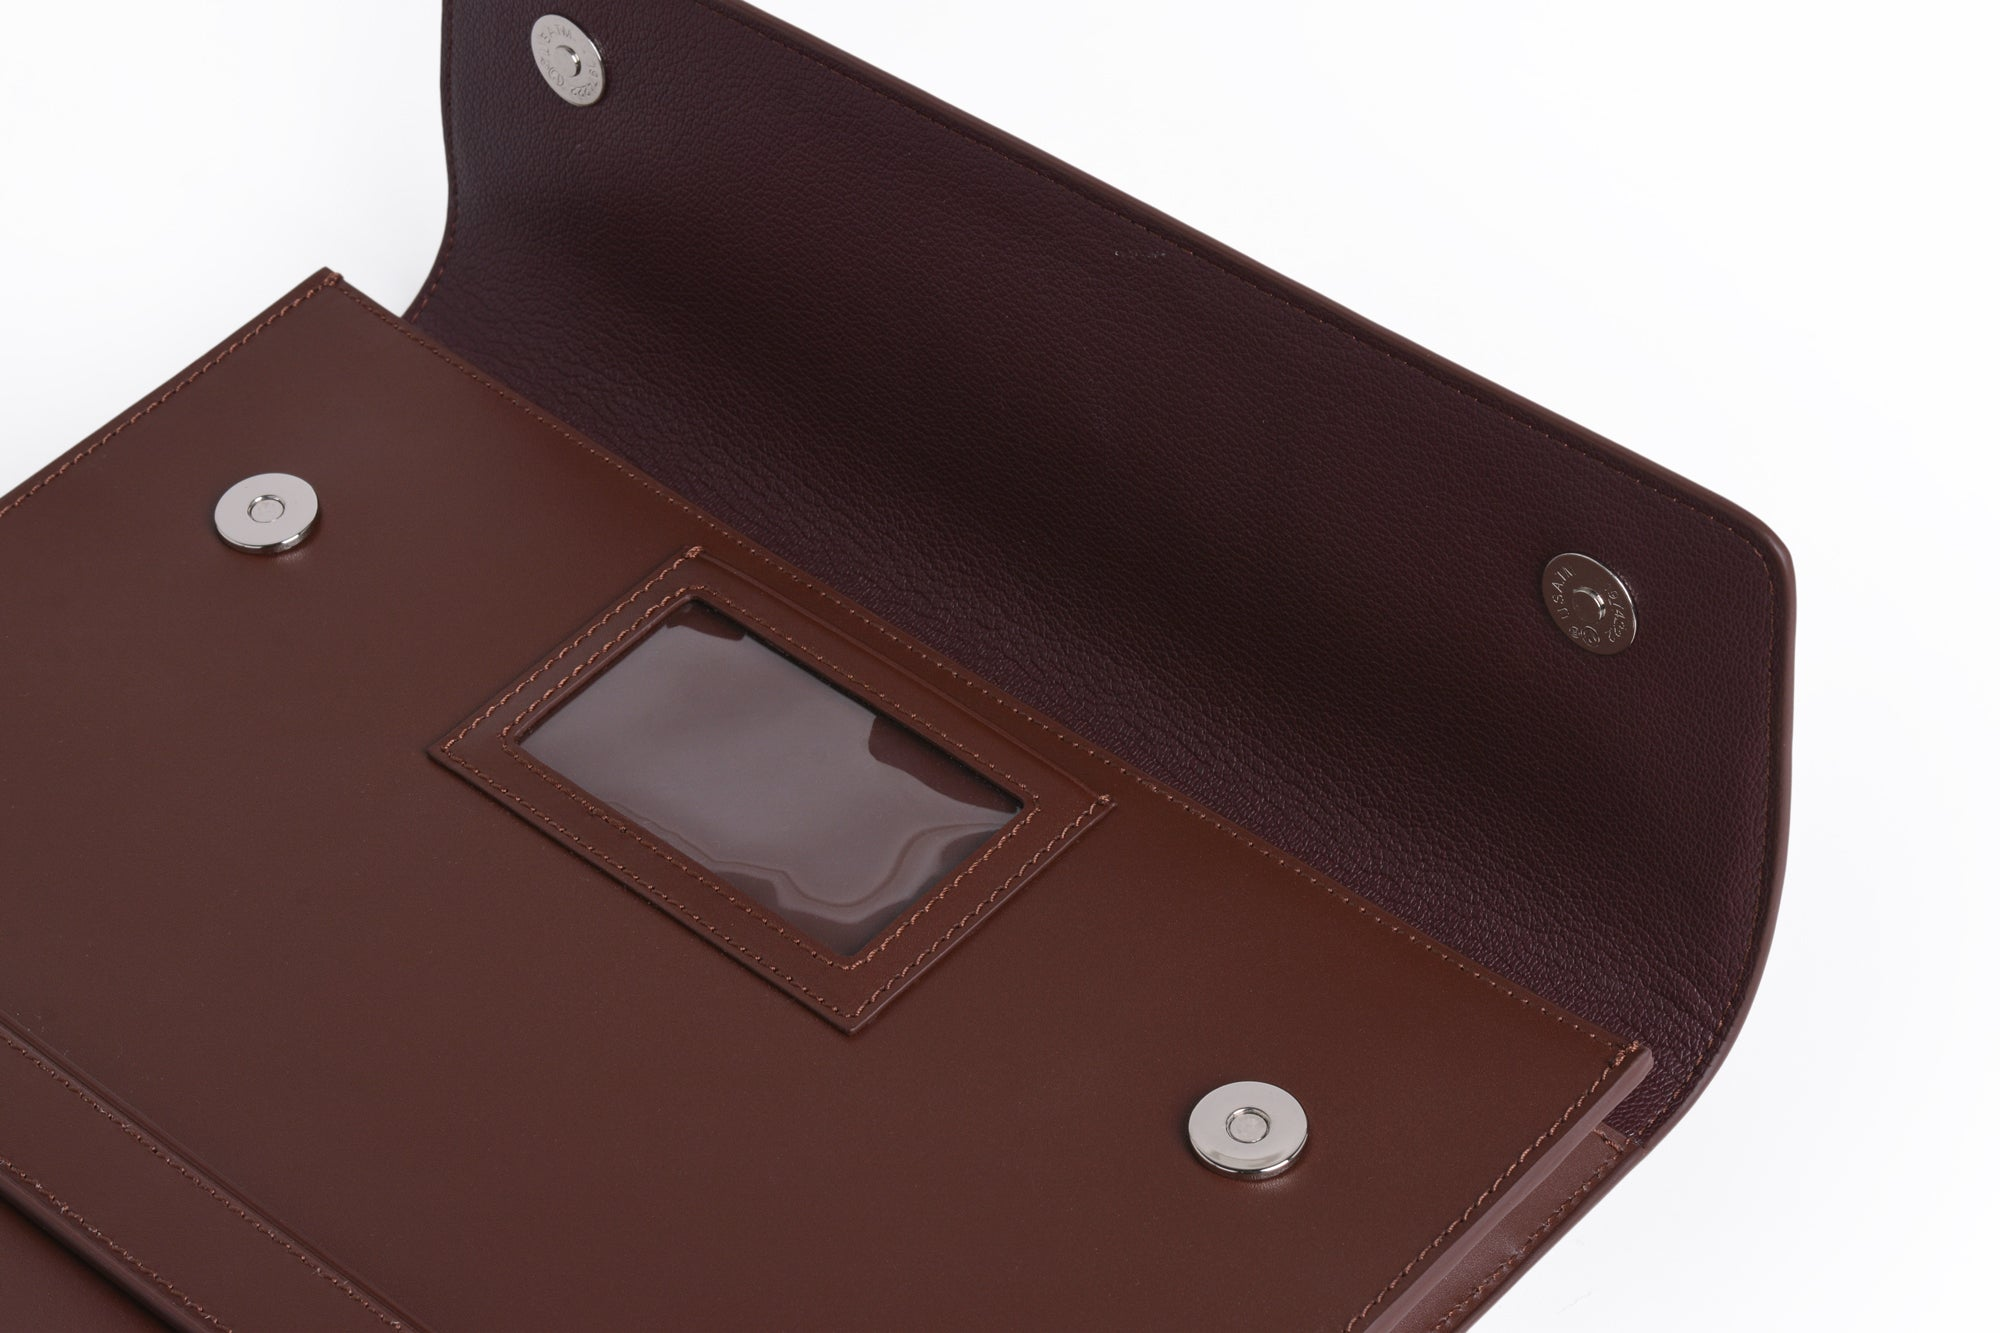 Bond Tablet Sleeve | Leather Tech Organizer (pre-orders closed)